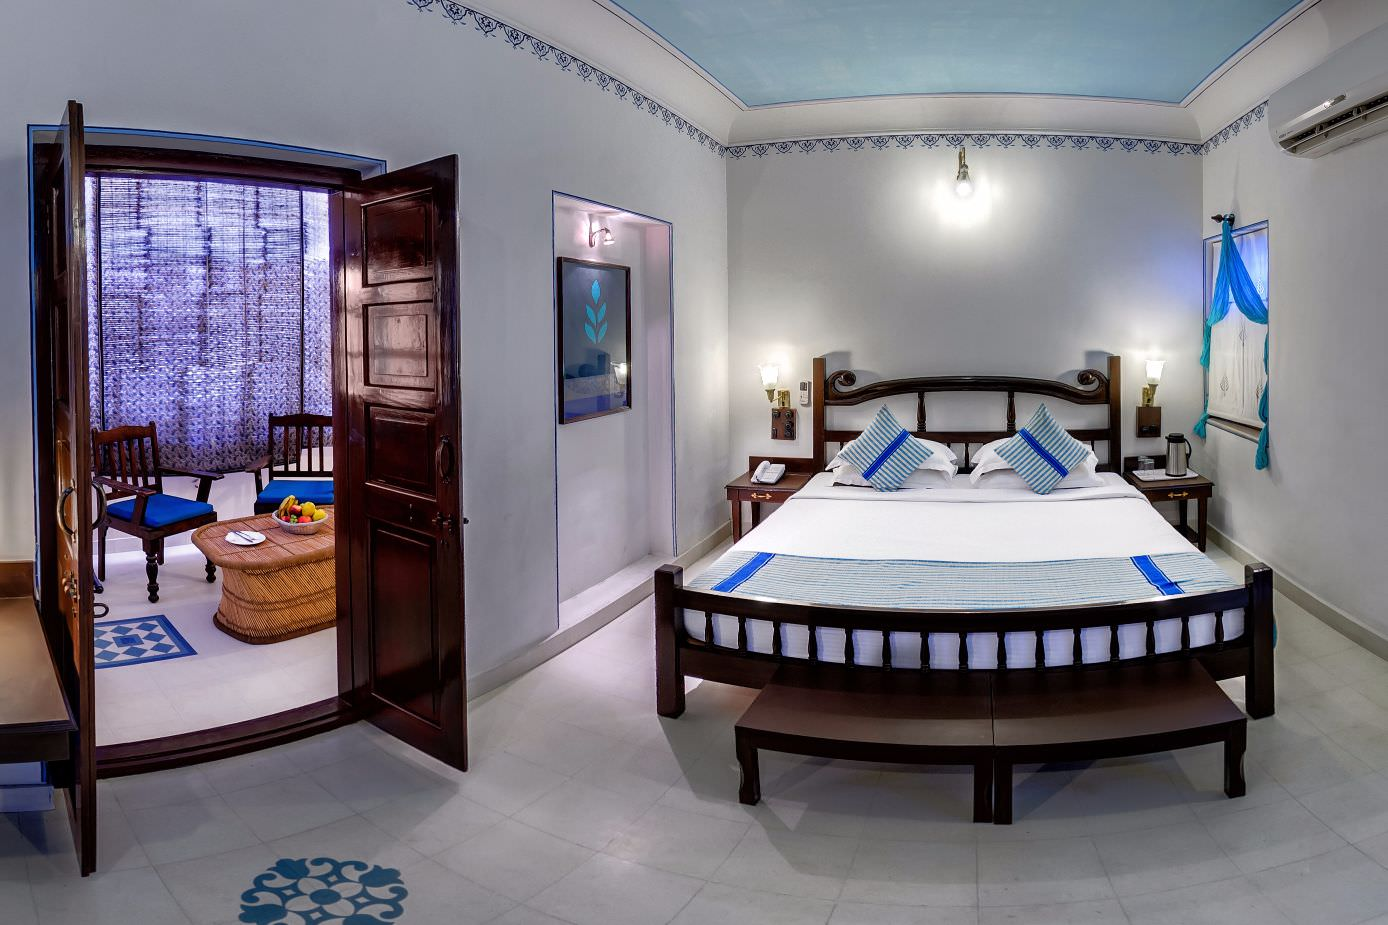 luxury hotel of Blue Room karma haveli